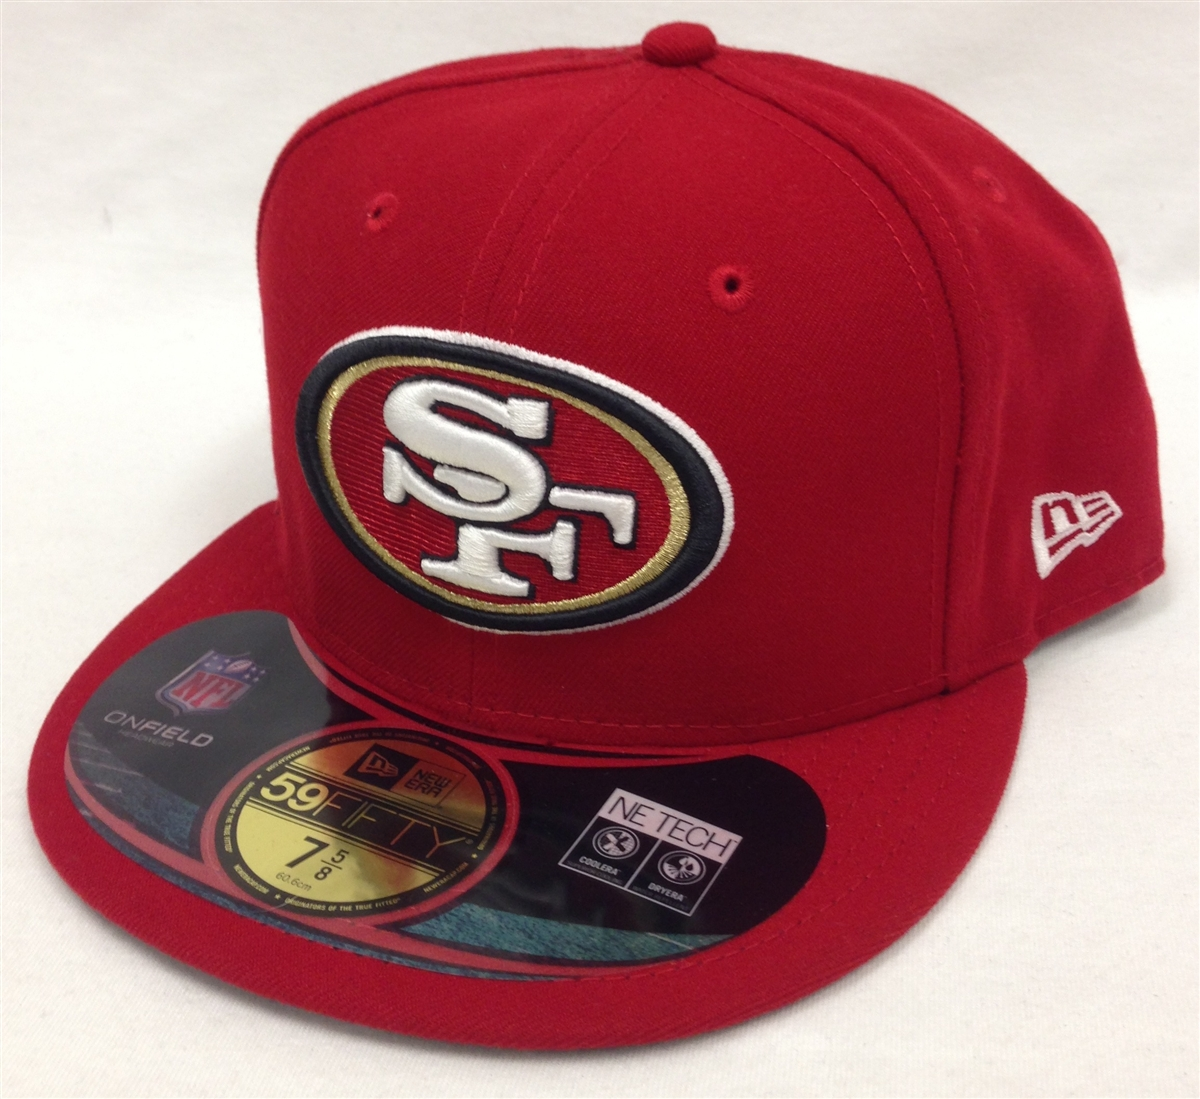 7ab3de7f New Era 59Fifty San Francisco 49ers Onfield Red Fitted Cap